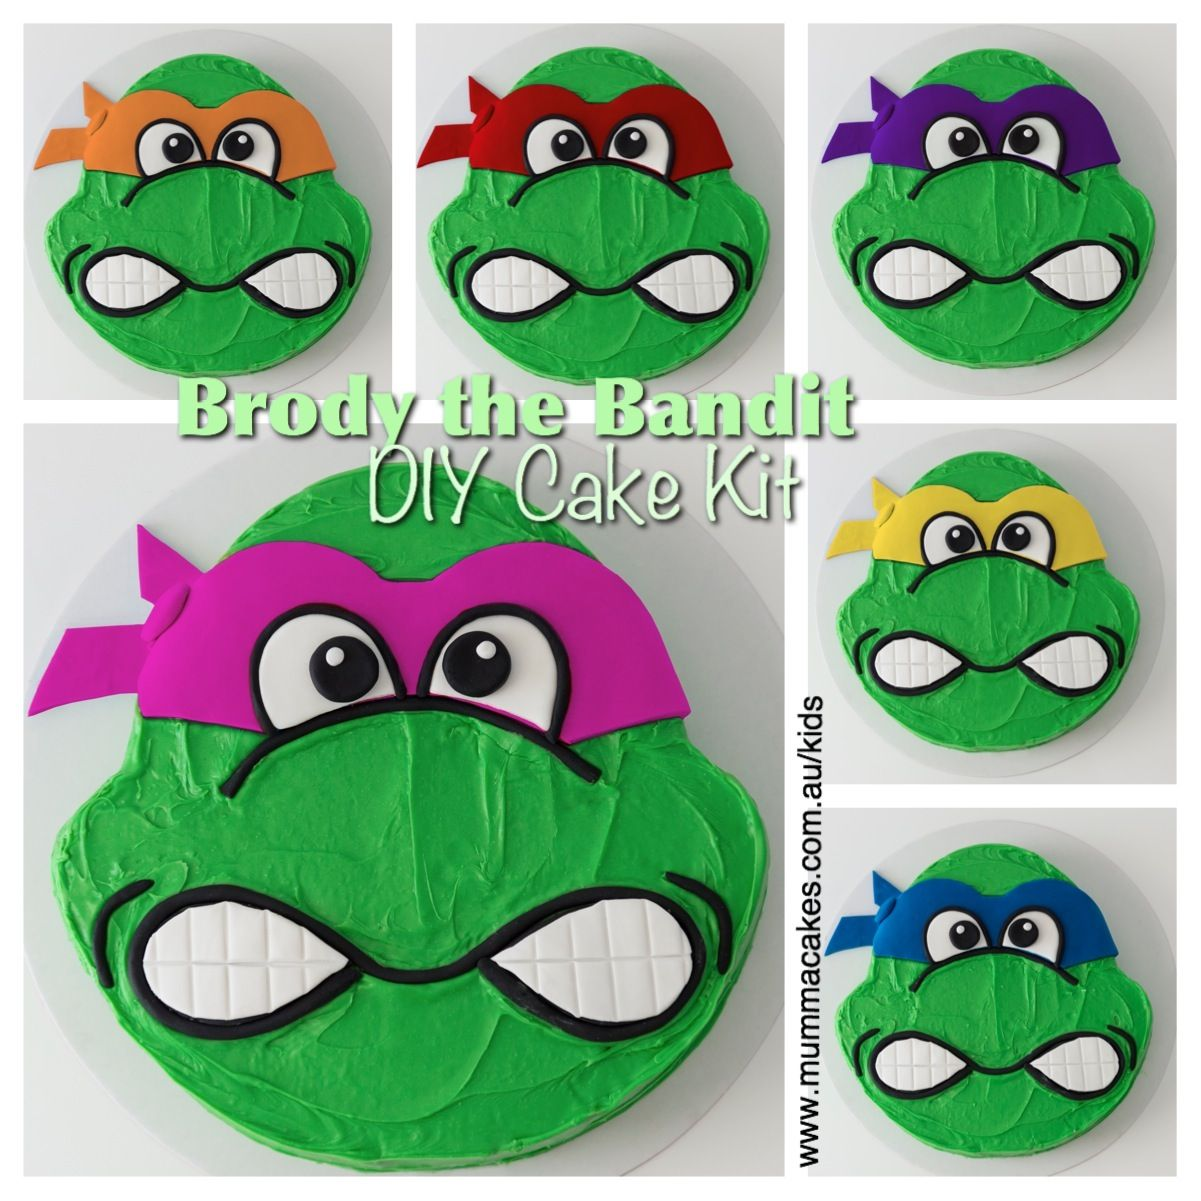 Brody The Bandit Diy Cake Kit You Choose The Mask Colour